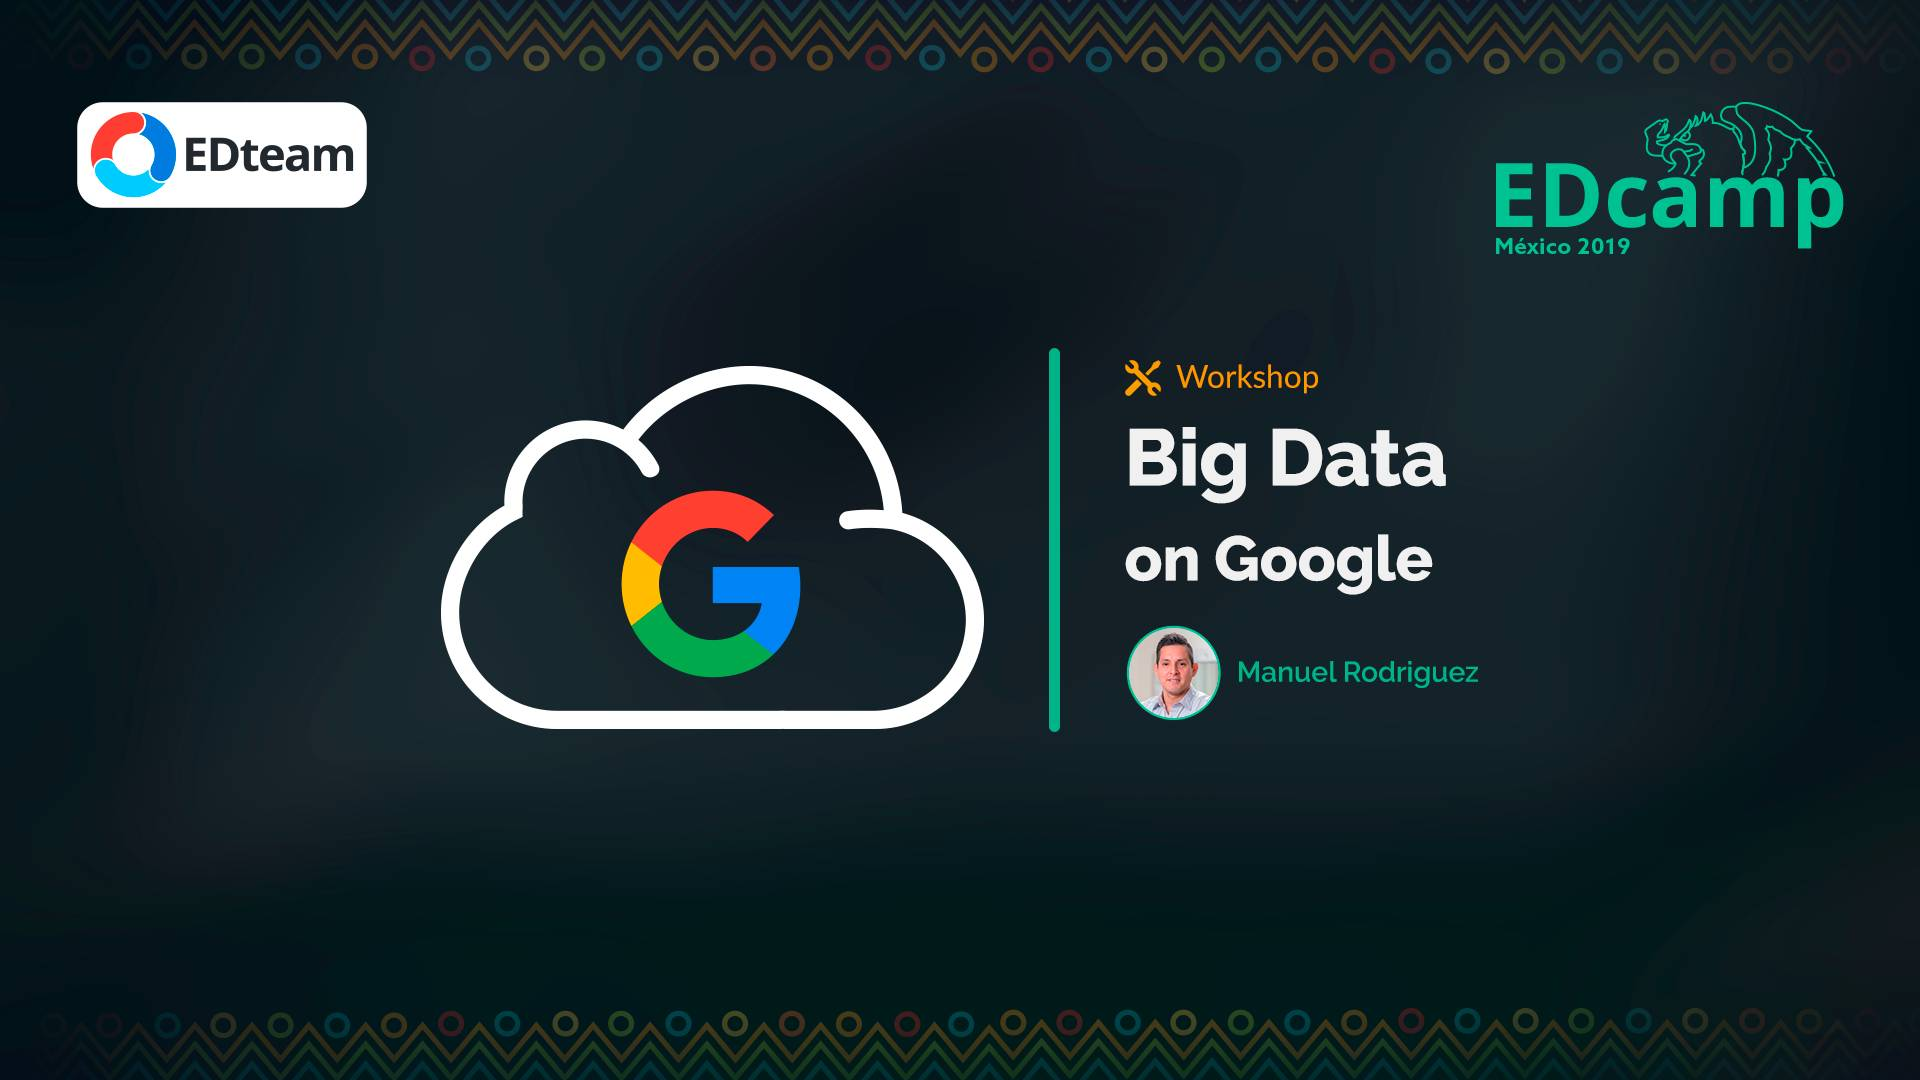 Big Data on Google